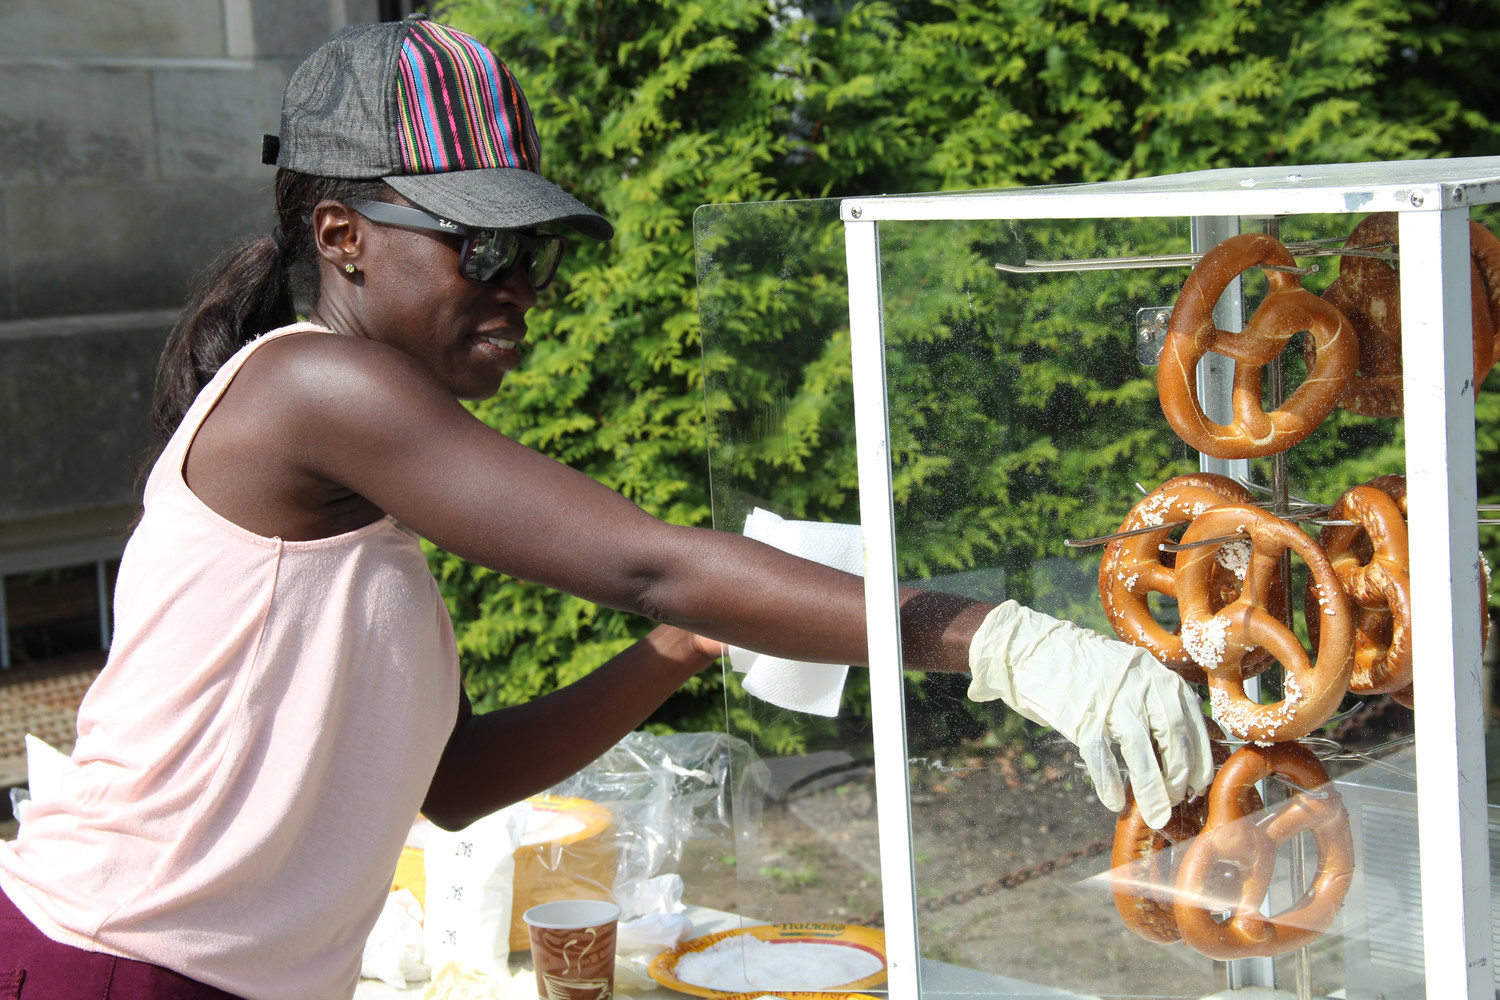 Librarian Michelle Samuel handed out the soft pretzels for attendees during festival.